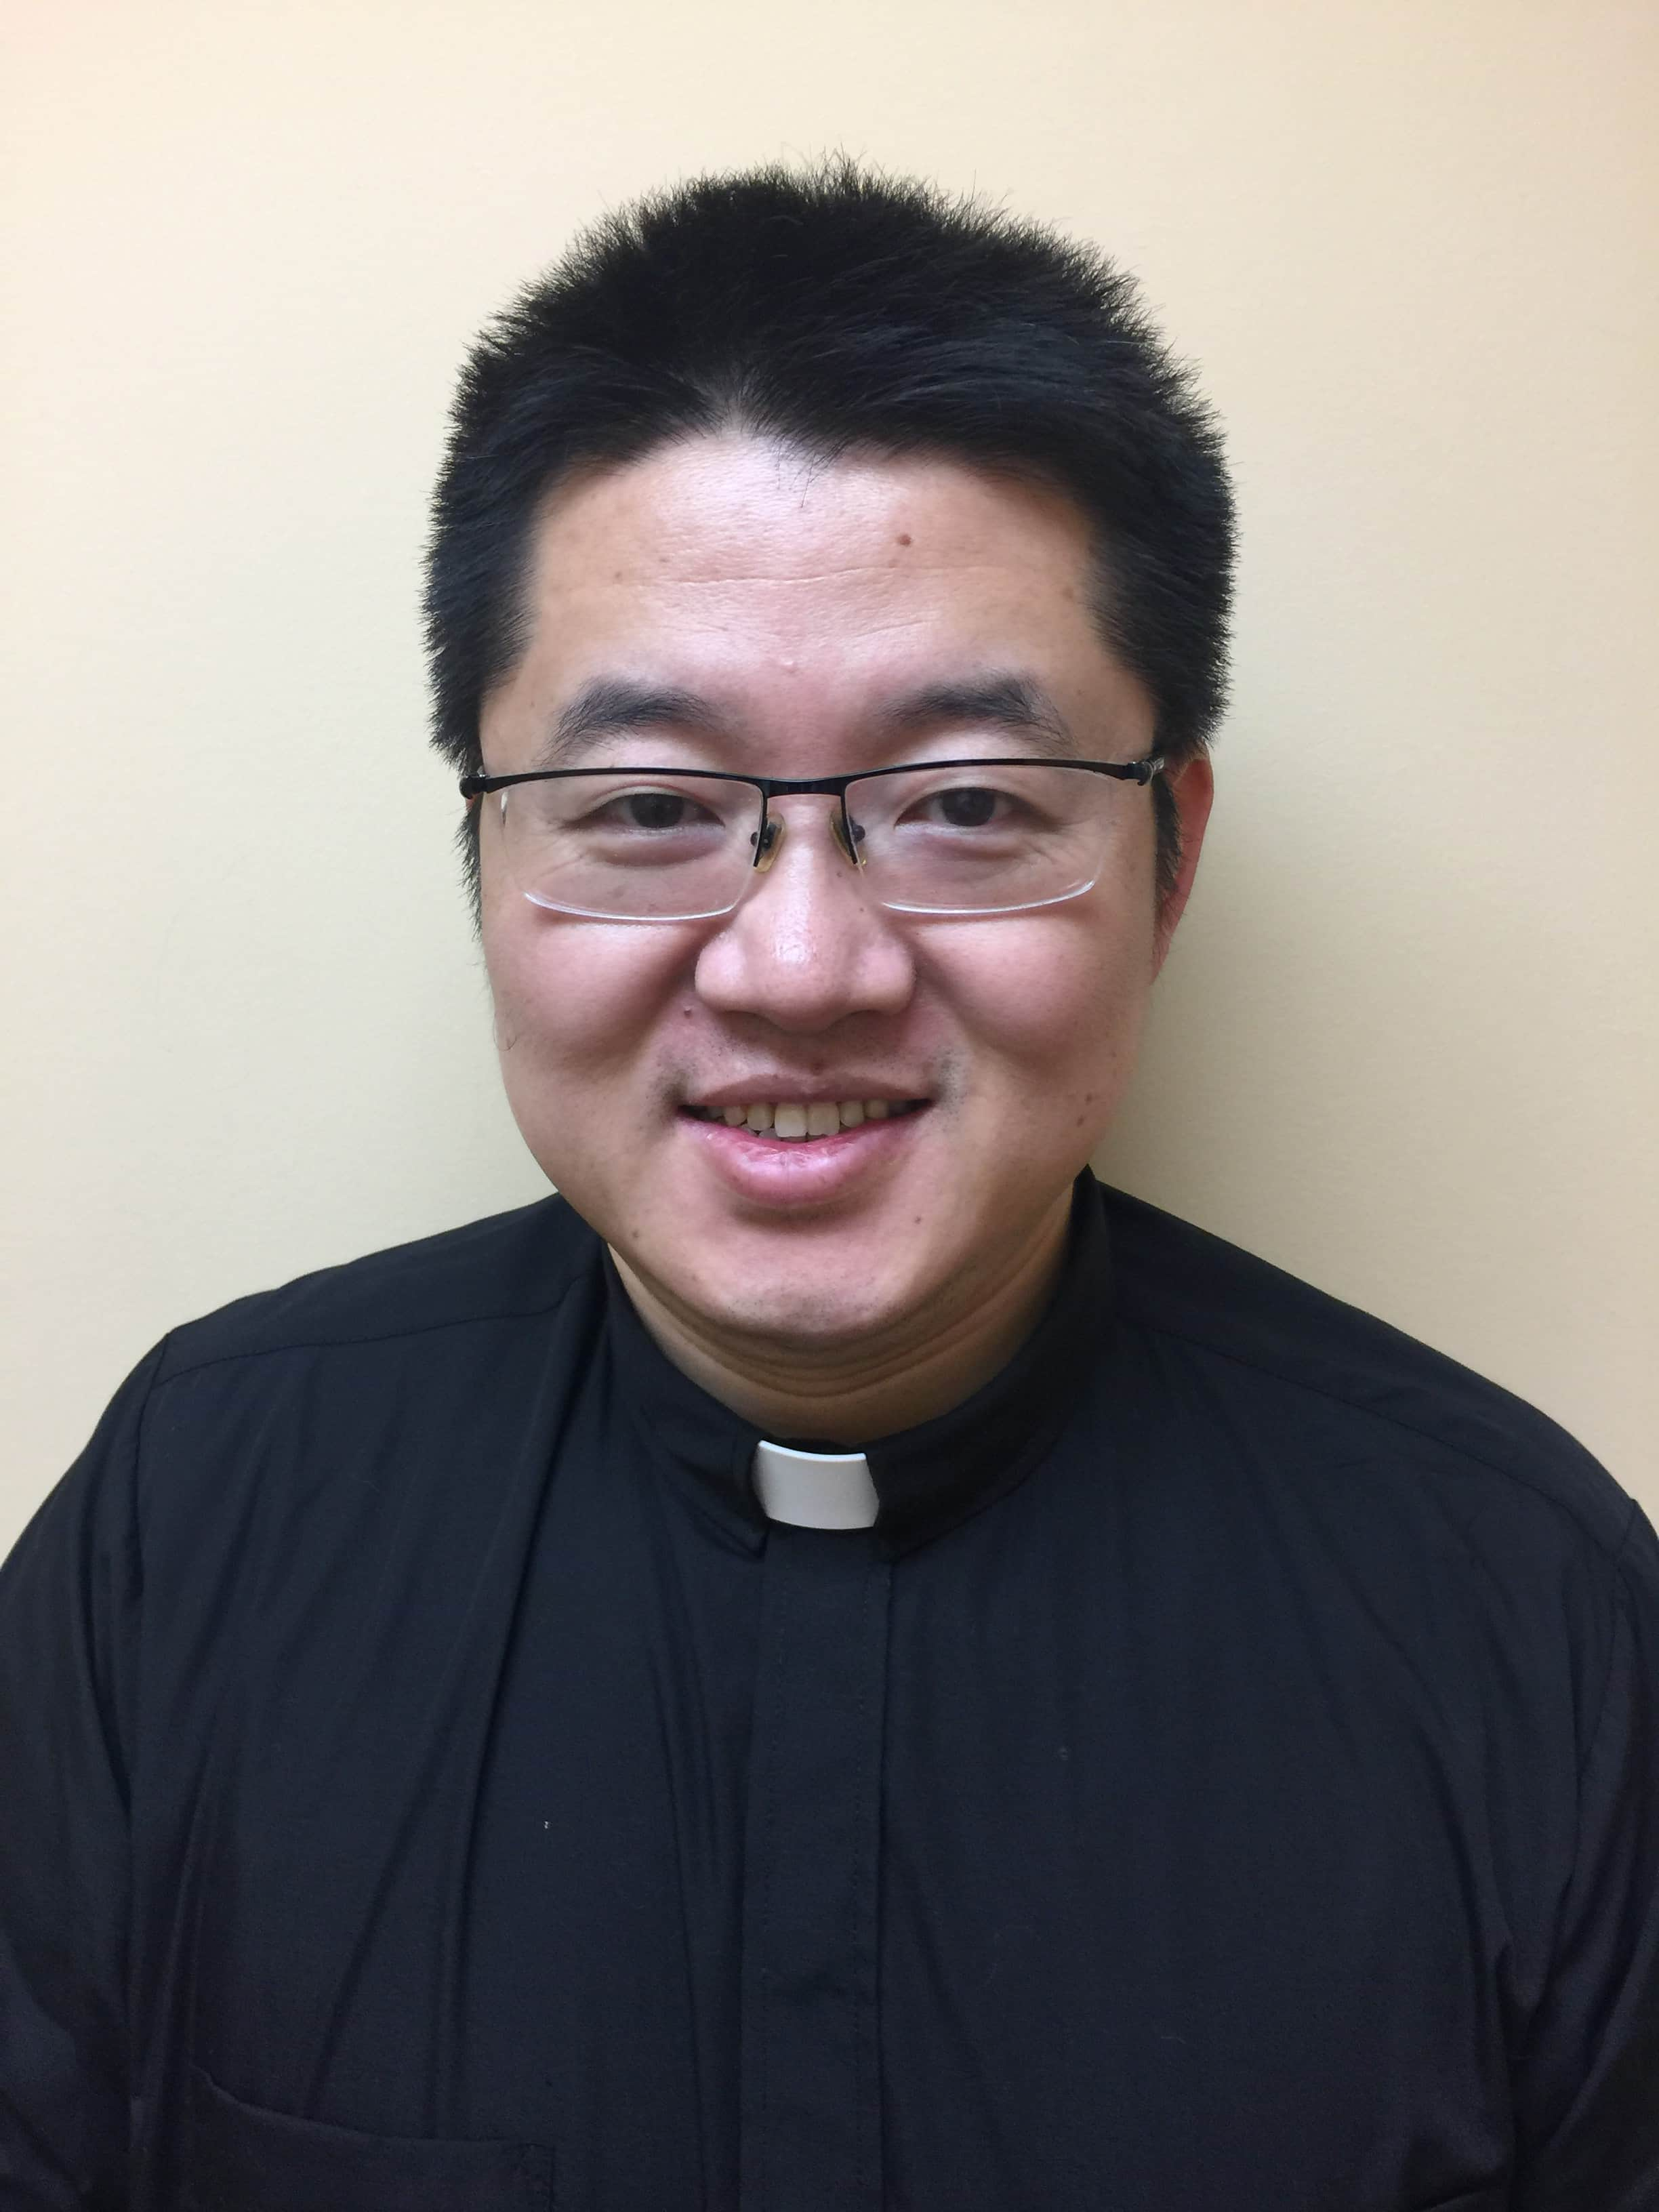 The Rev. Garfield Wu